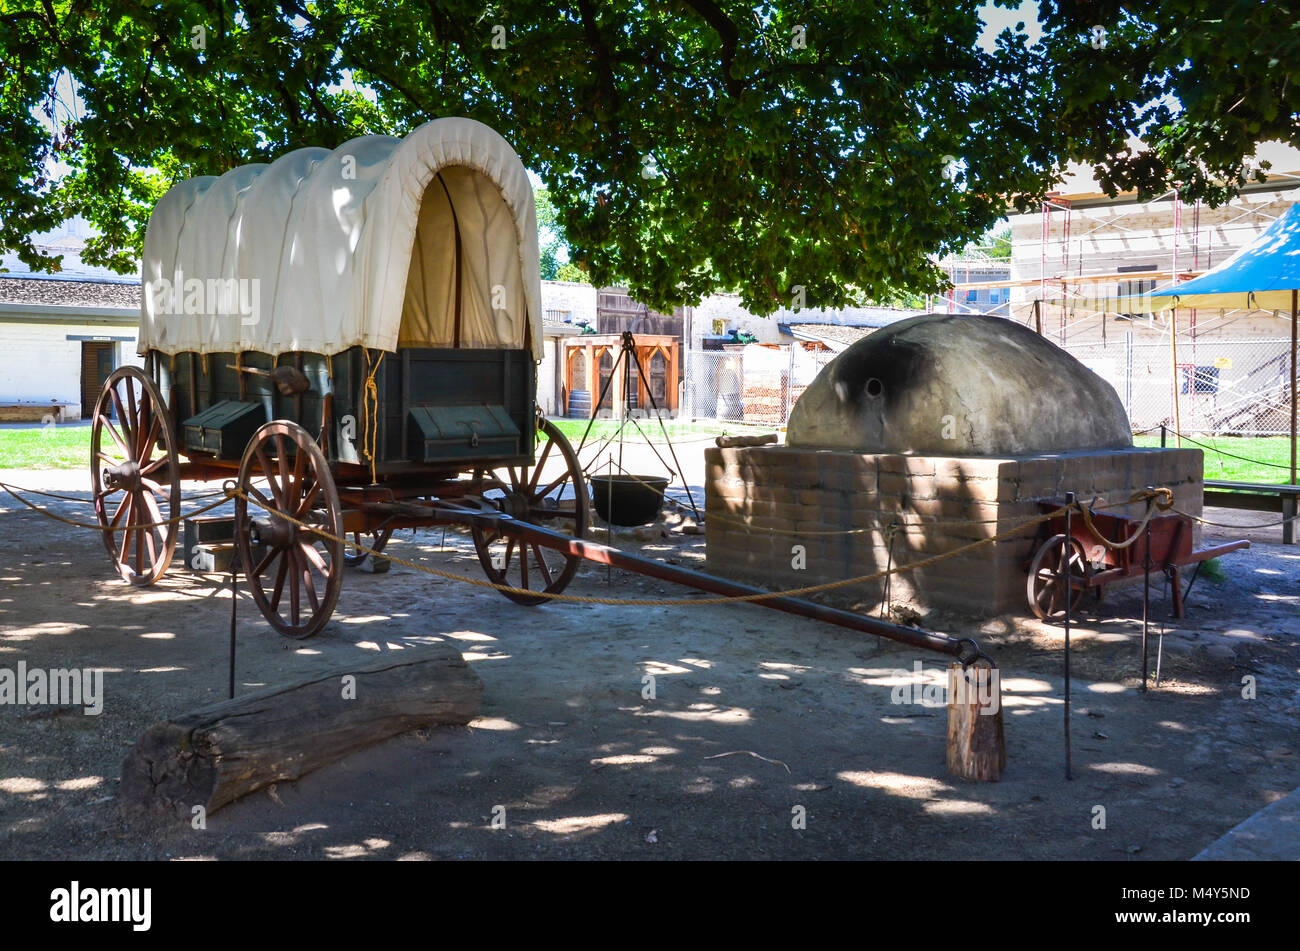 Covered wagon and beehive oven in outdoor exhibit at Sutter's Fort Historical Site near Sacramento, CA. - Stock Image